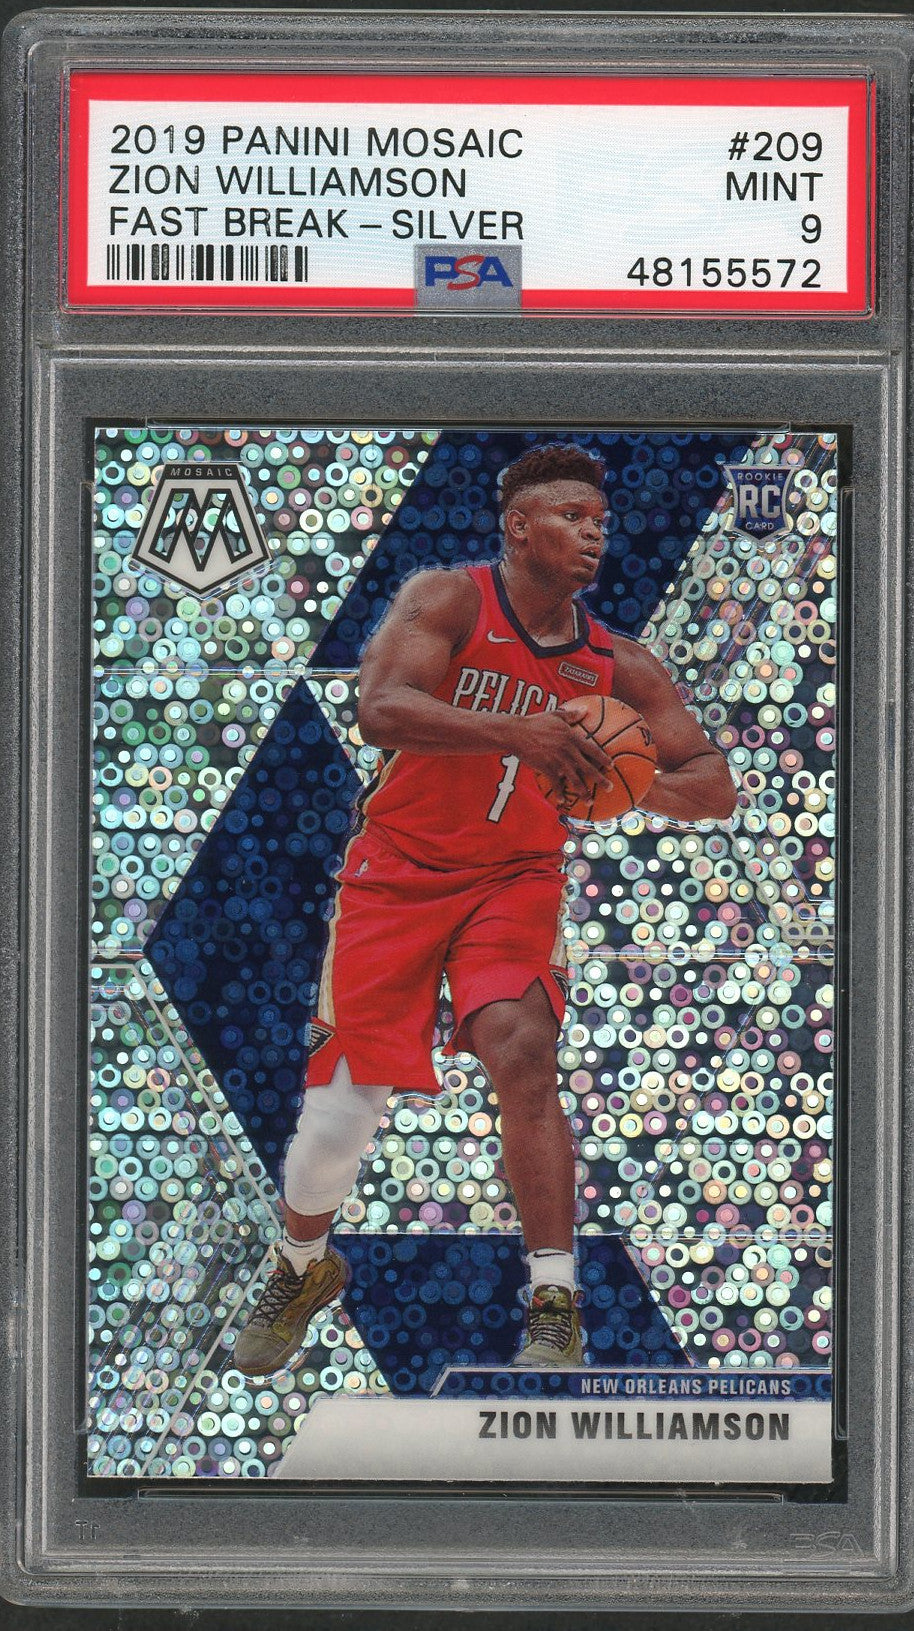 Zion Williamson New Orleans Pelicans 2019 Panini Mosaic Fast Break Silver Prizm Basketball Rookie Card RC #209 Graded PSA 9 MINT-Powers Sports Memorabilia